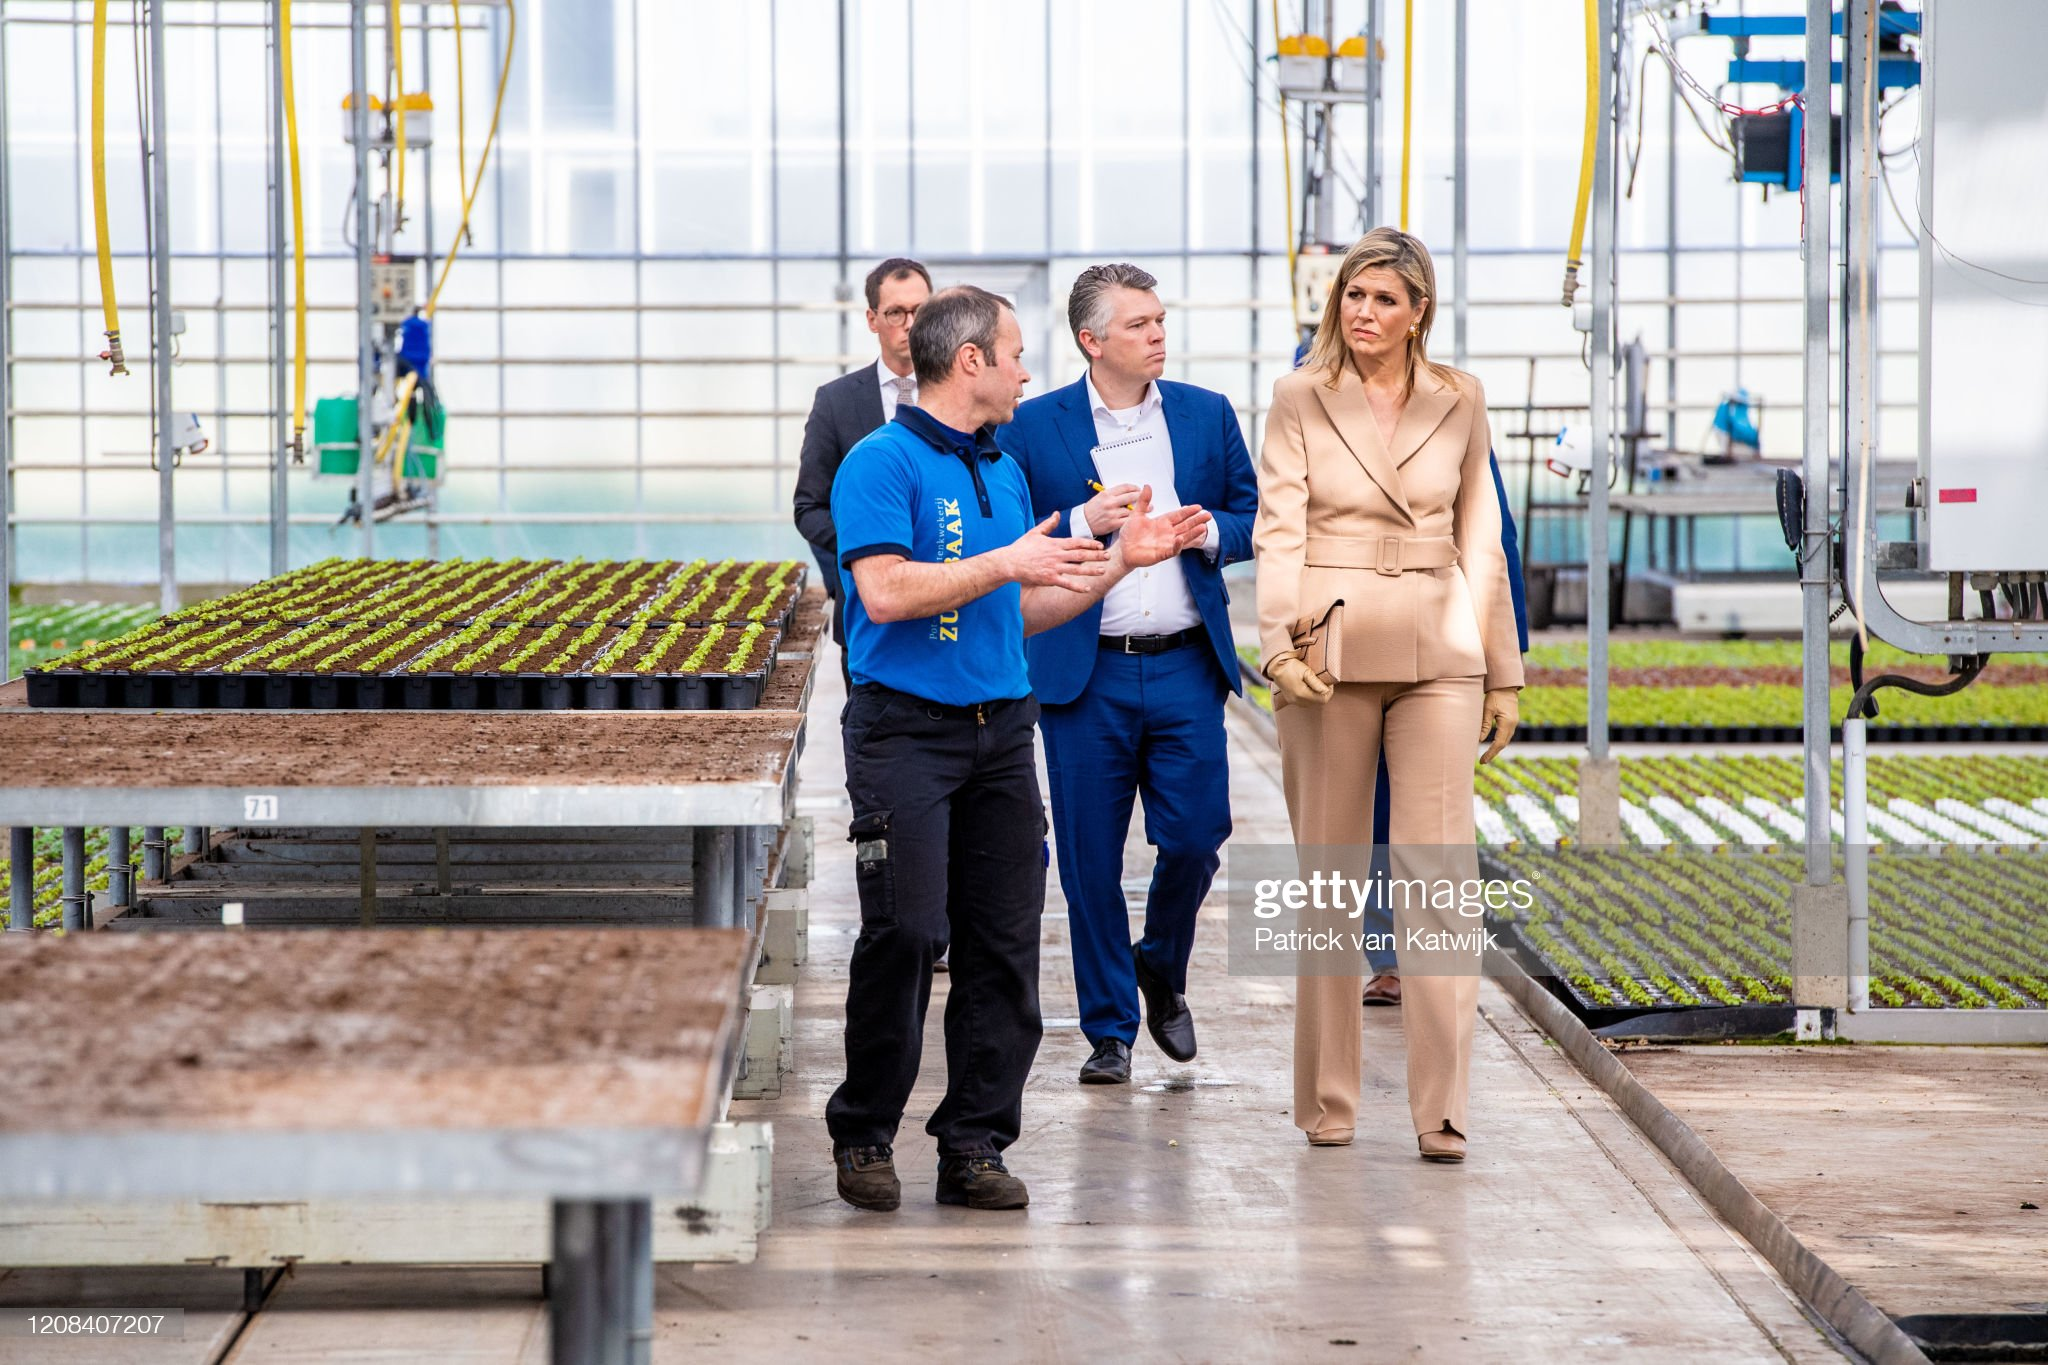 https://media.gettyimages.com/photos/queen-maxima-of-the-netherlands-visits-zuidbaak-floriculture-company-picture-id1208407207?s=2048x2048